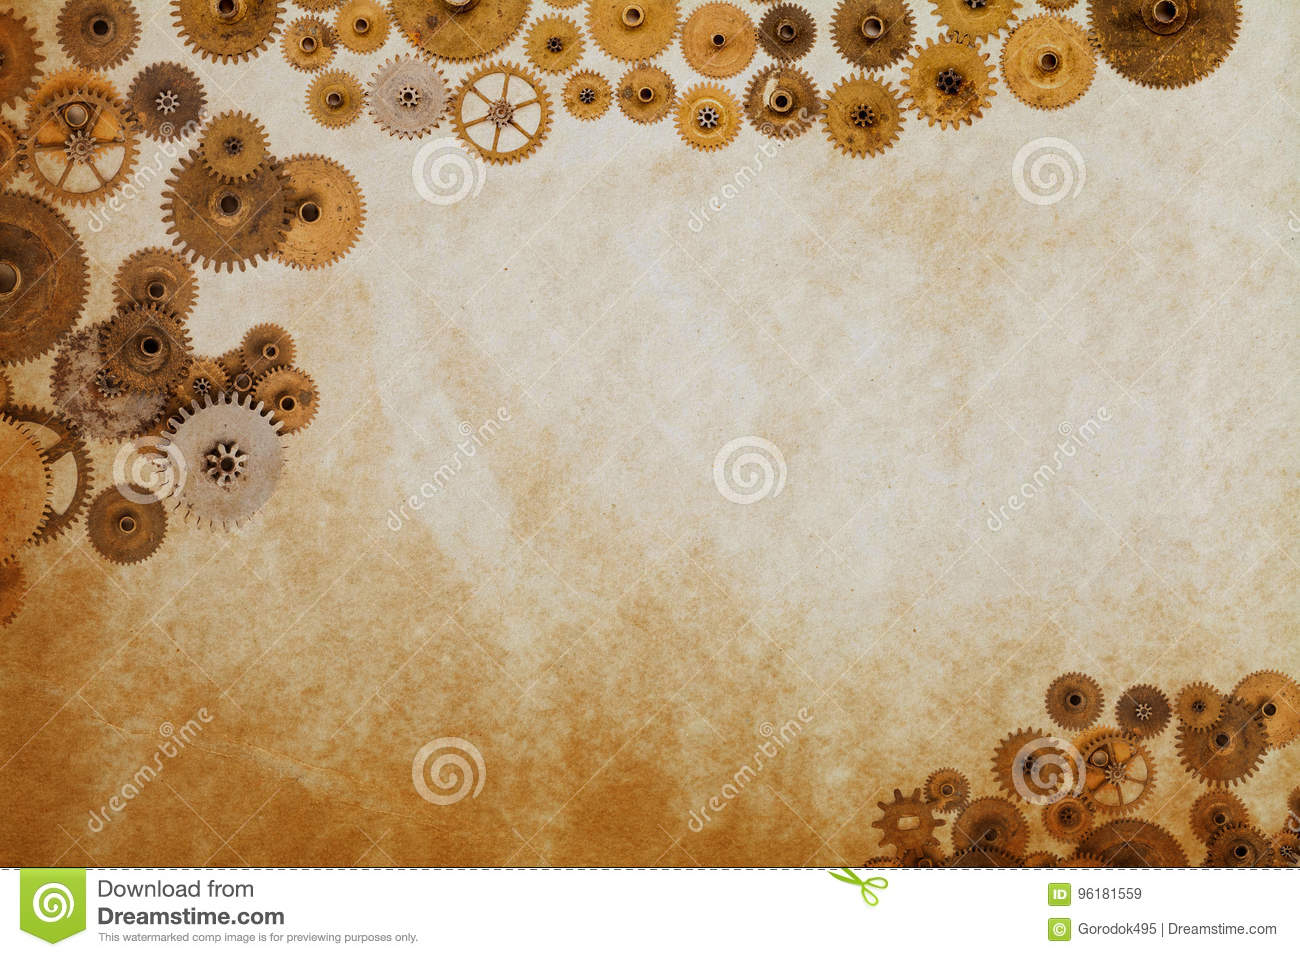 industrial machinery template cogs gears on aged textured paper